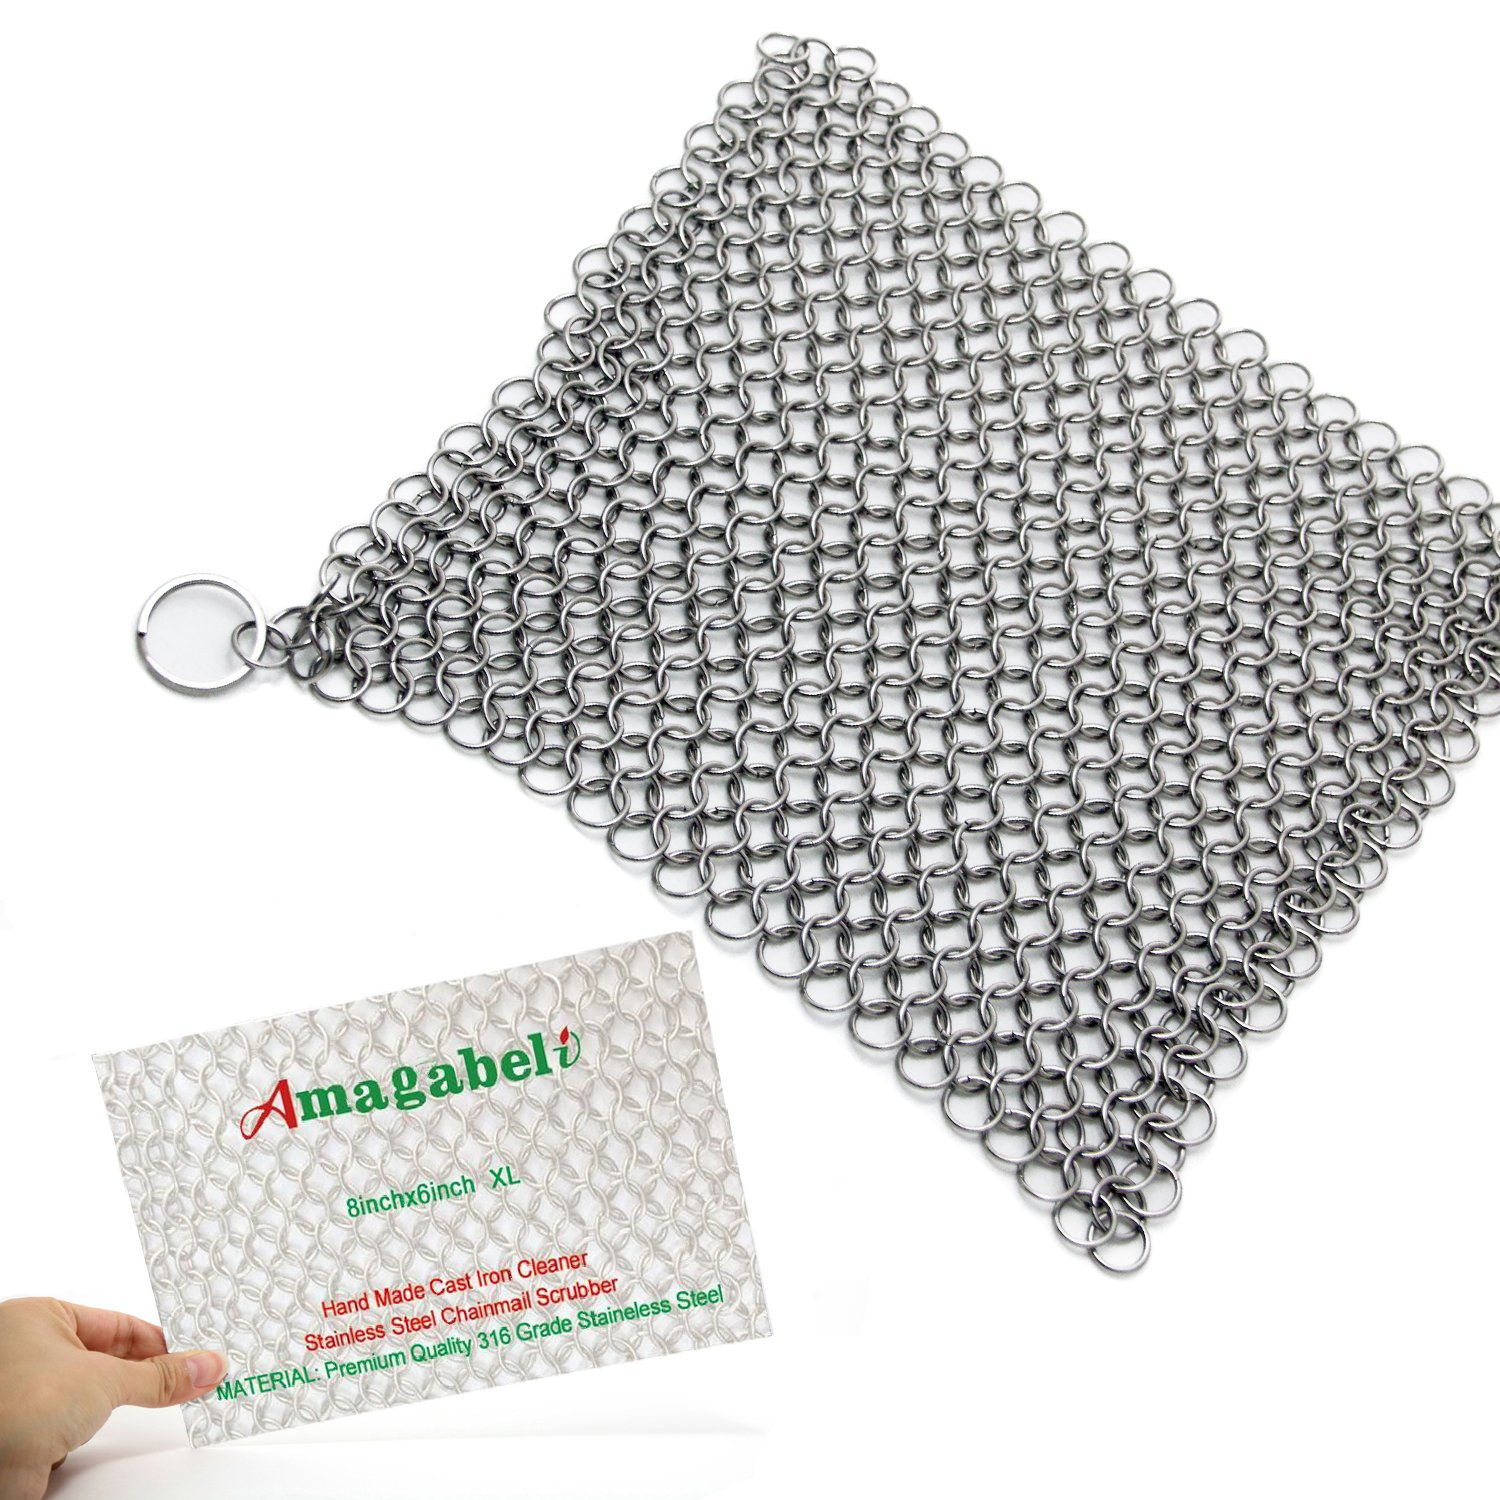 Amagabeli Home Cast Iron Cleaner XL 8x6 Inch 316L Highest Grade Stainless Steel Chainmail Scrubber , 316HW001